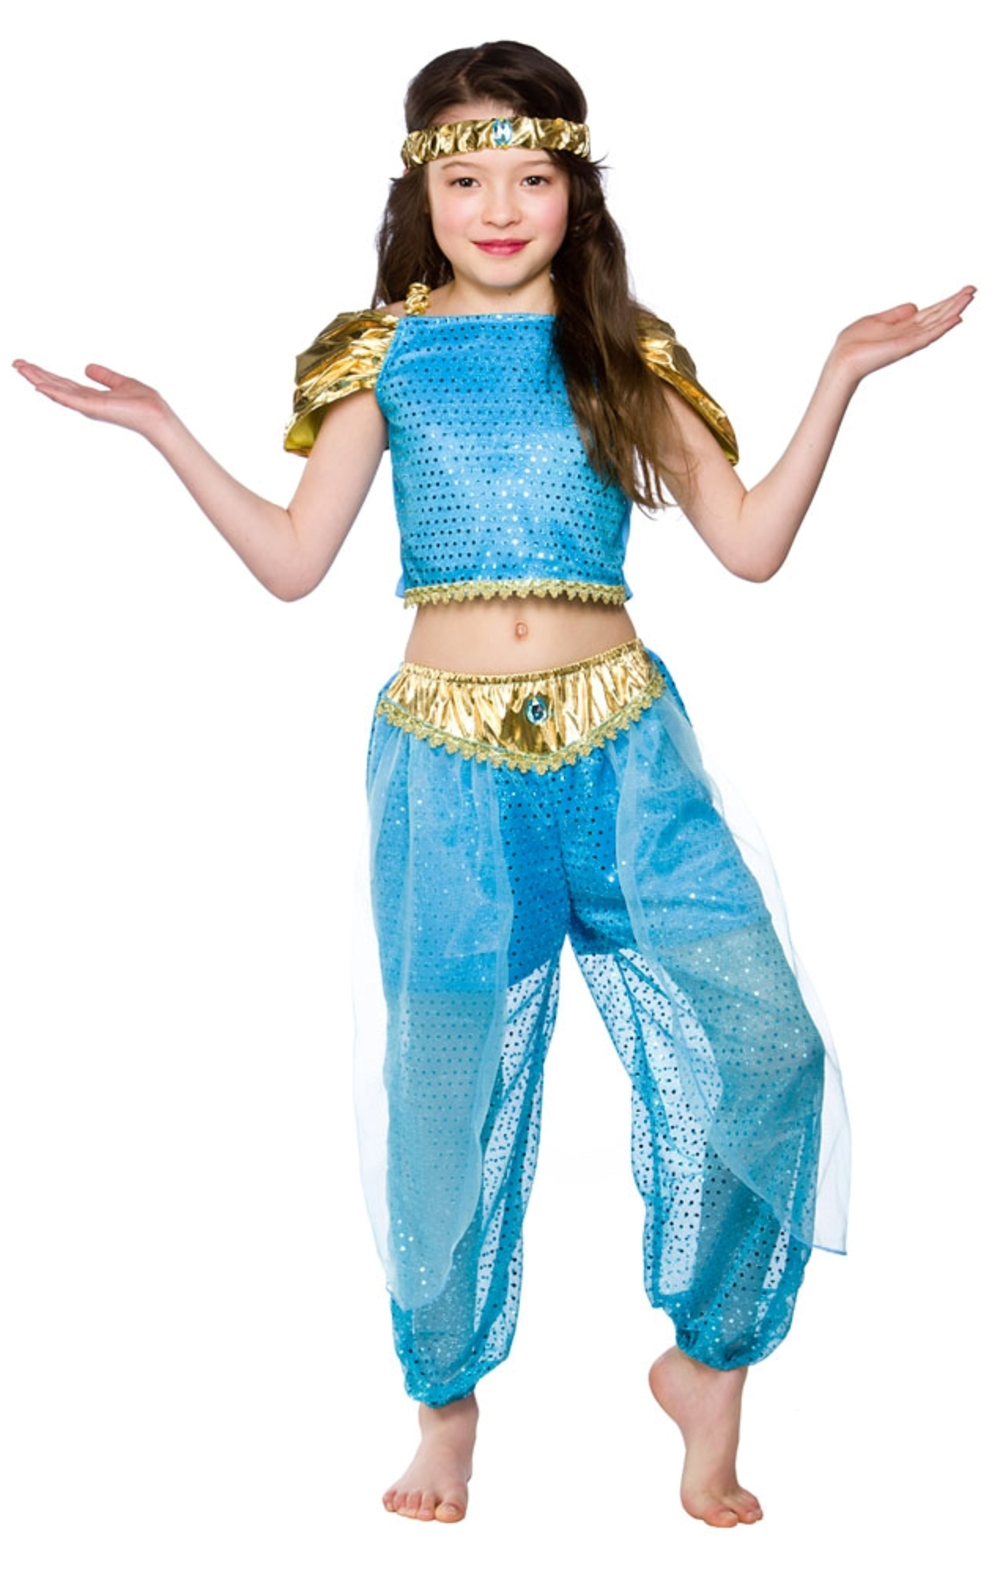 Arabian Princess Costume | Letter "|1000|1575|?|e923c530e17071b275d41ae13ca7113e|False|UNLIKELY|0.32829368114471436